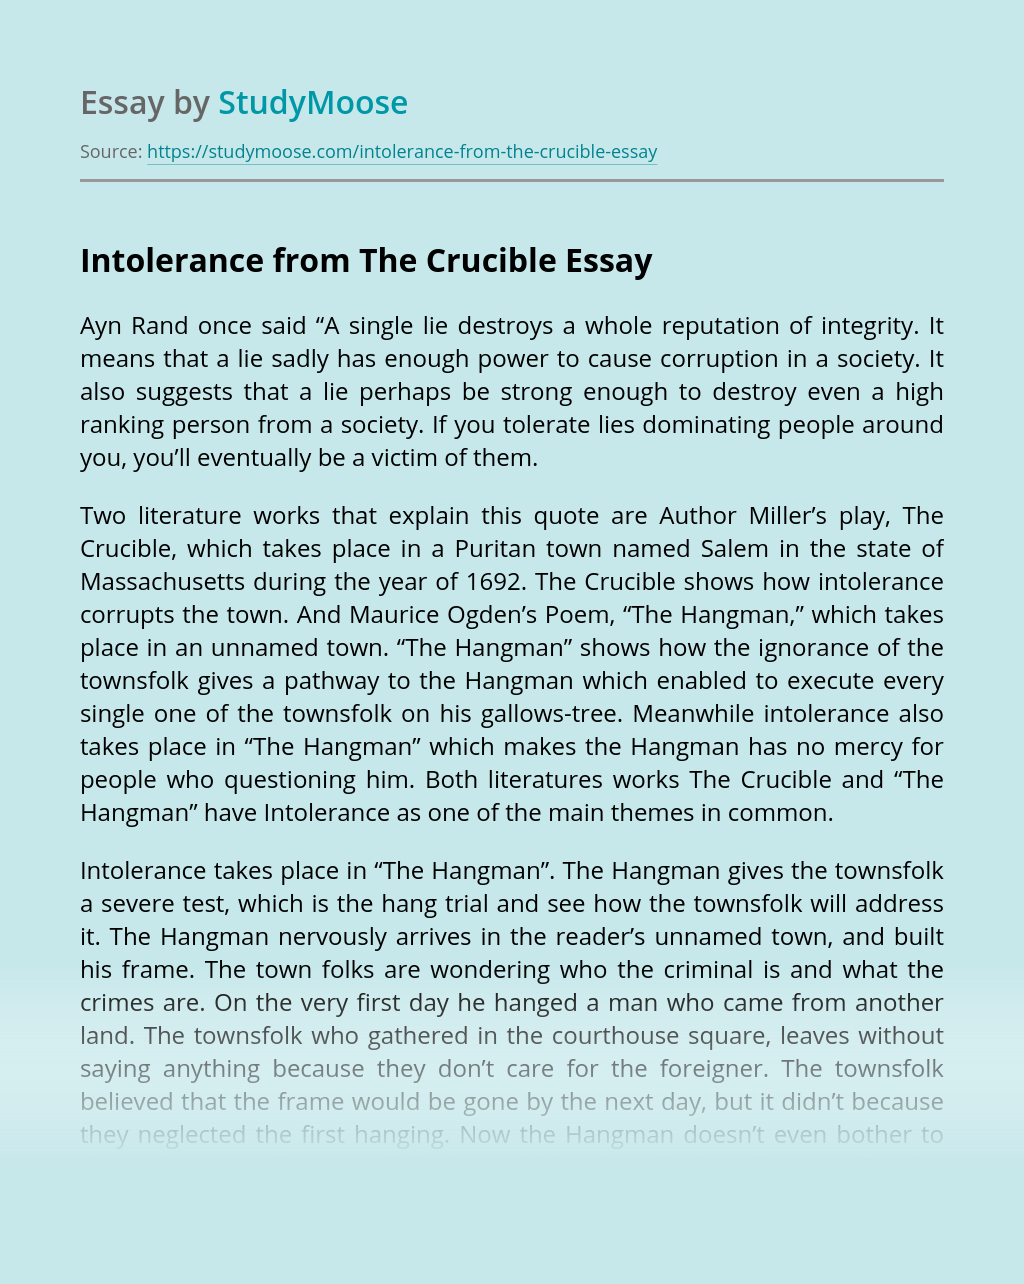 Intolerance from The Crucible